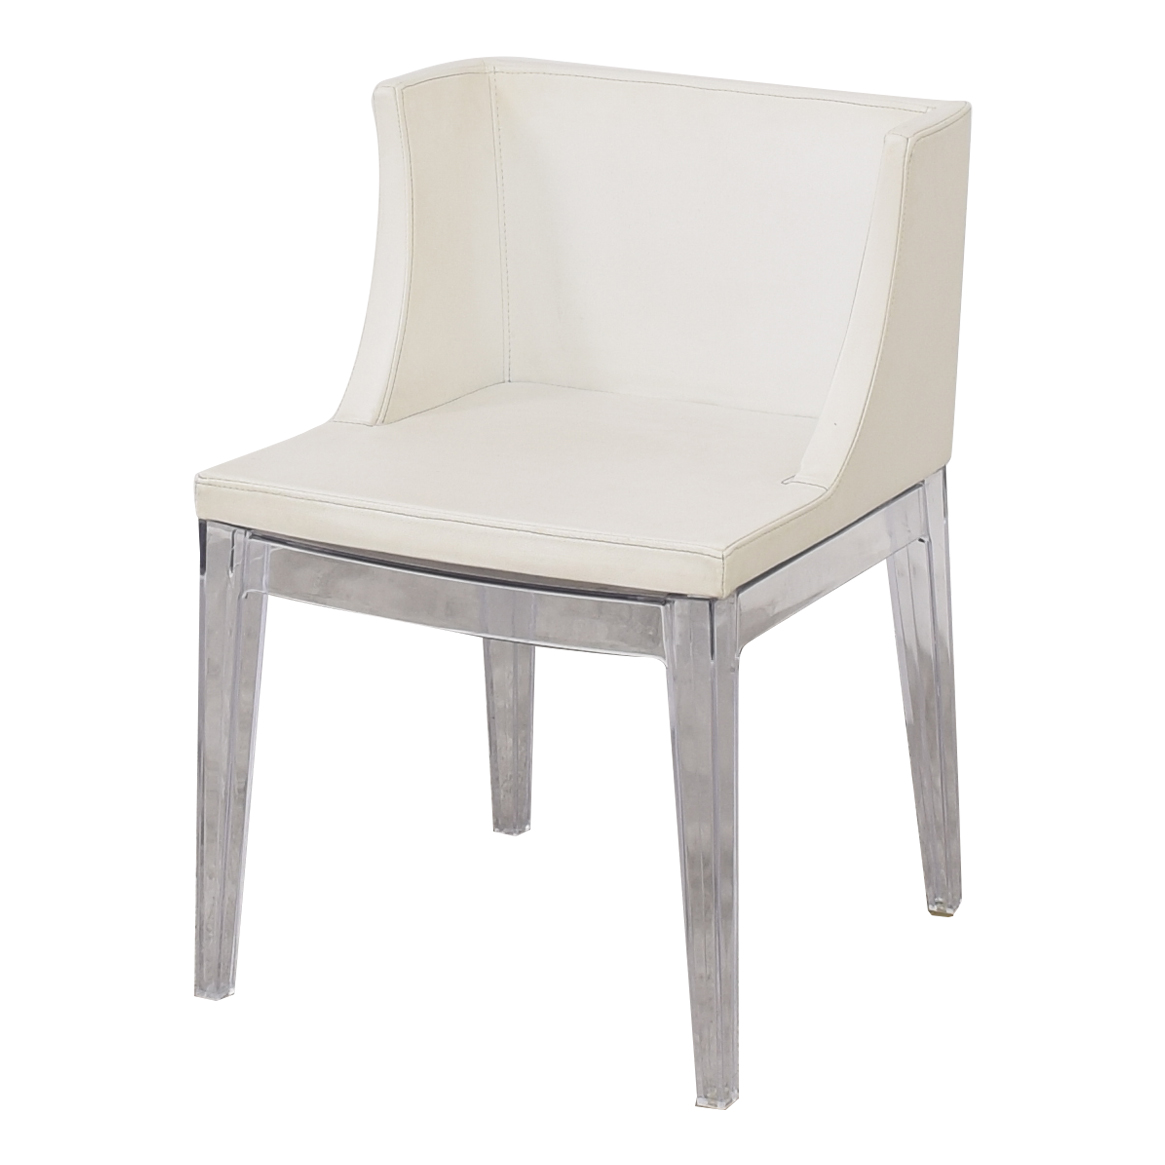 buy  Mademoiselle-Style Chairs online